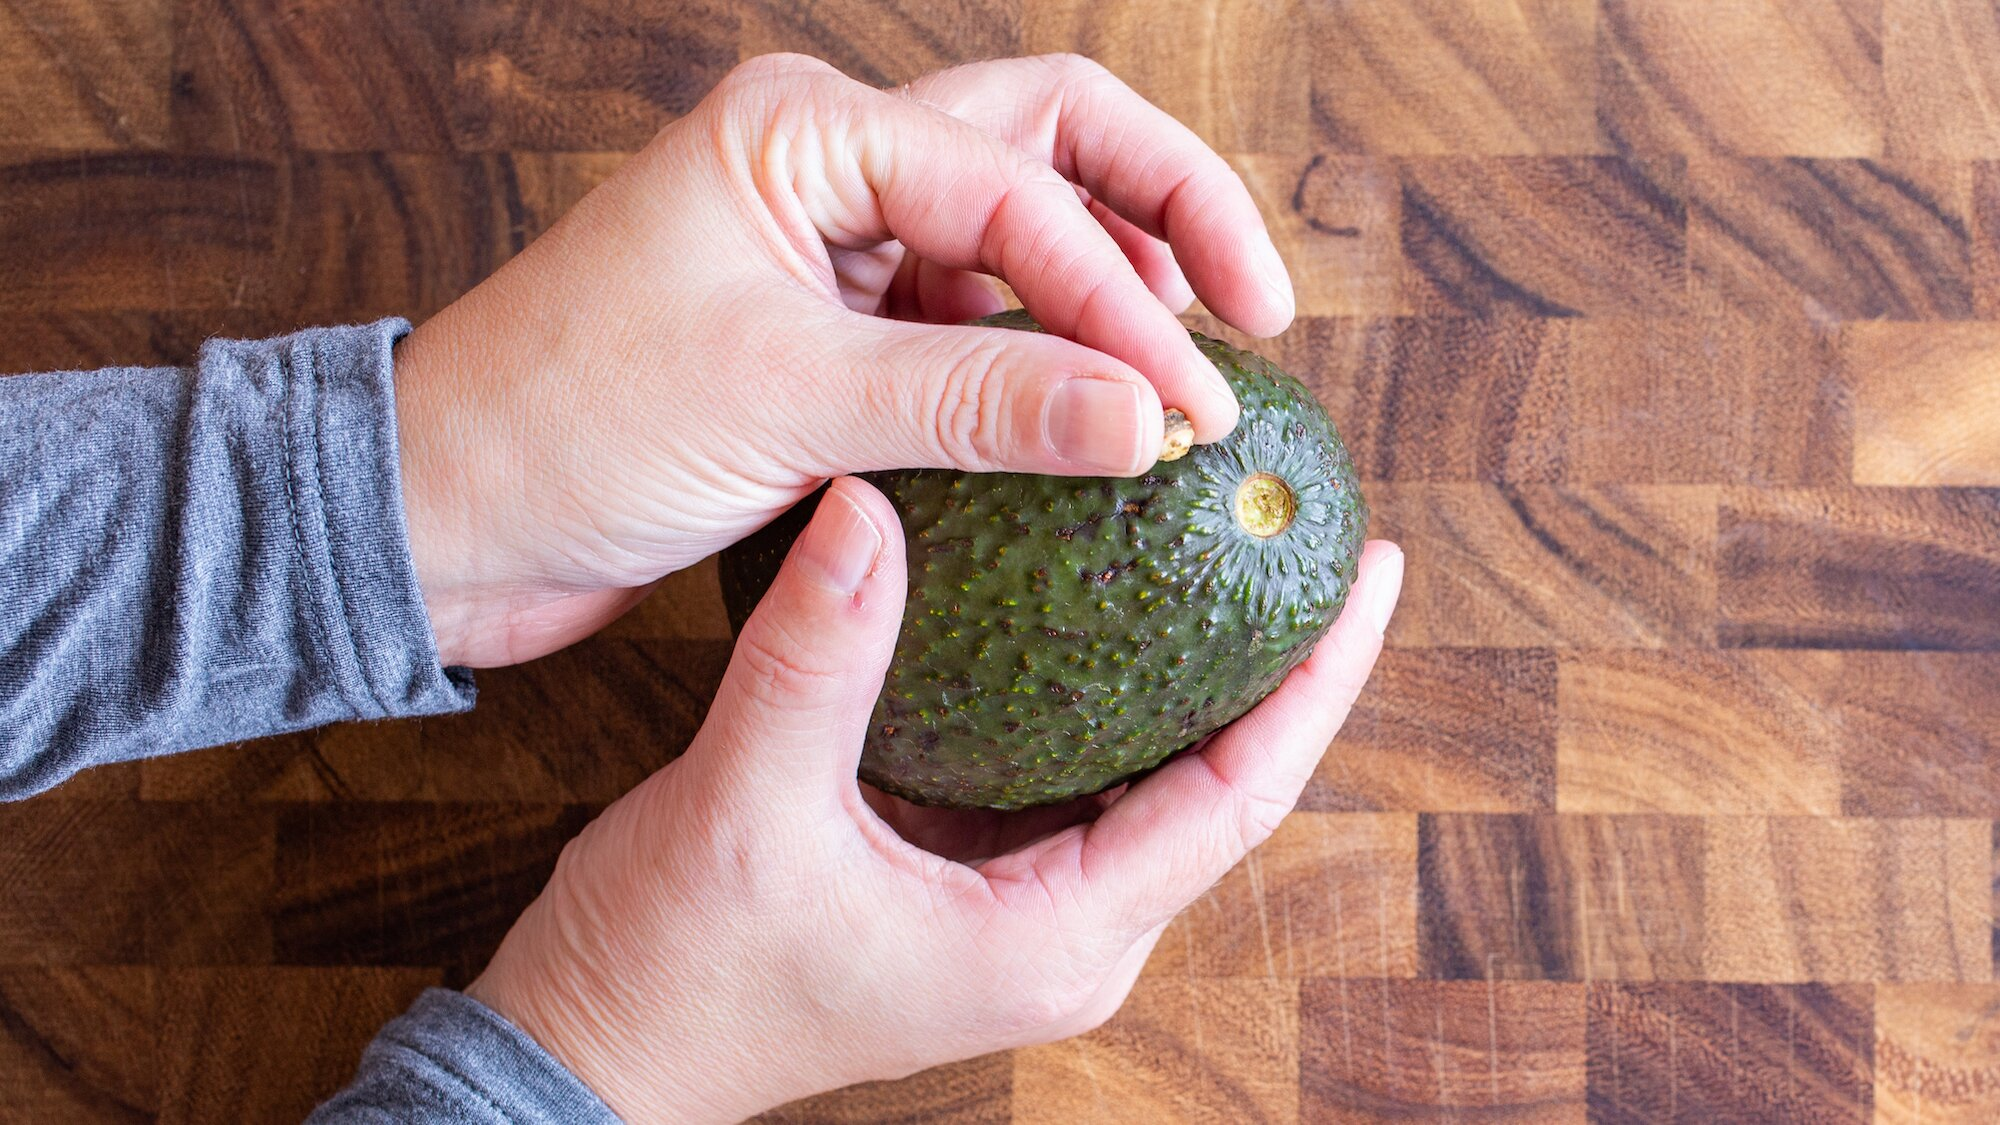 hand holding an avocado, with the other hand holding the avocado stem